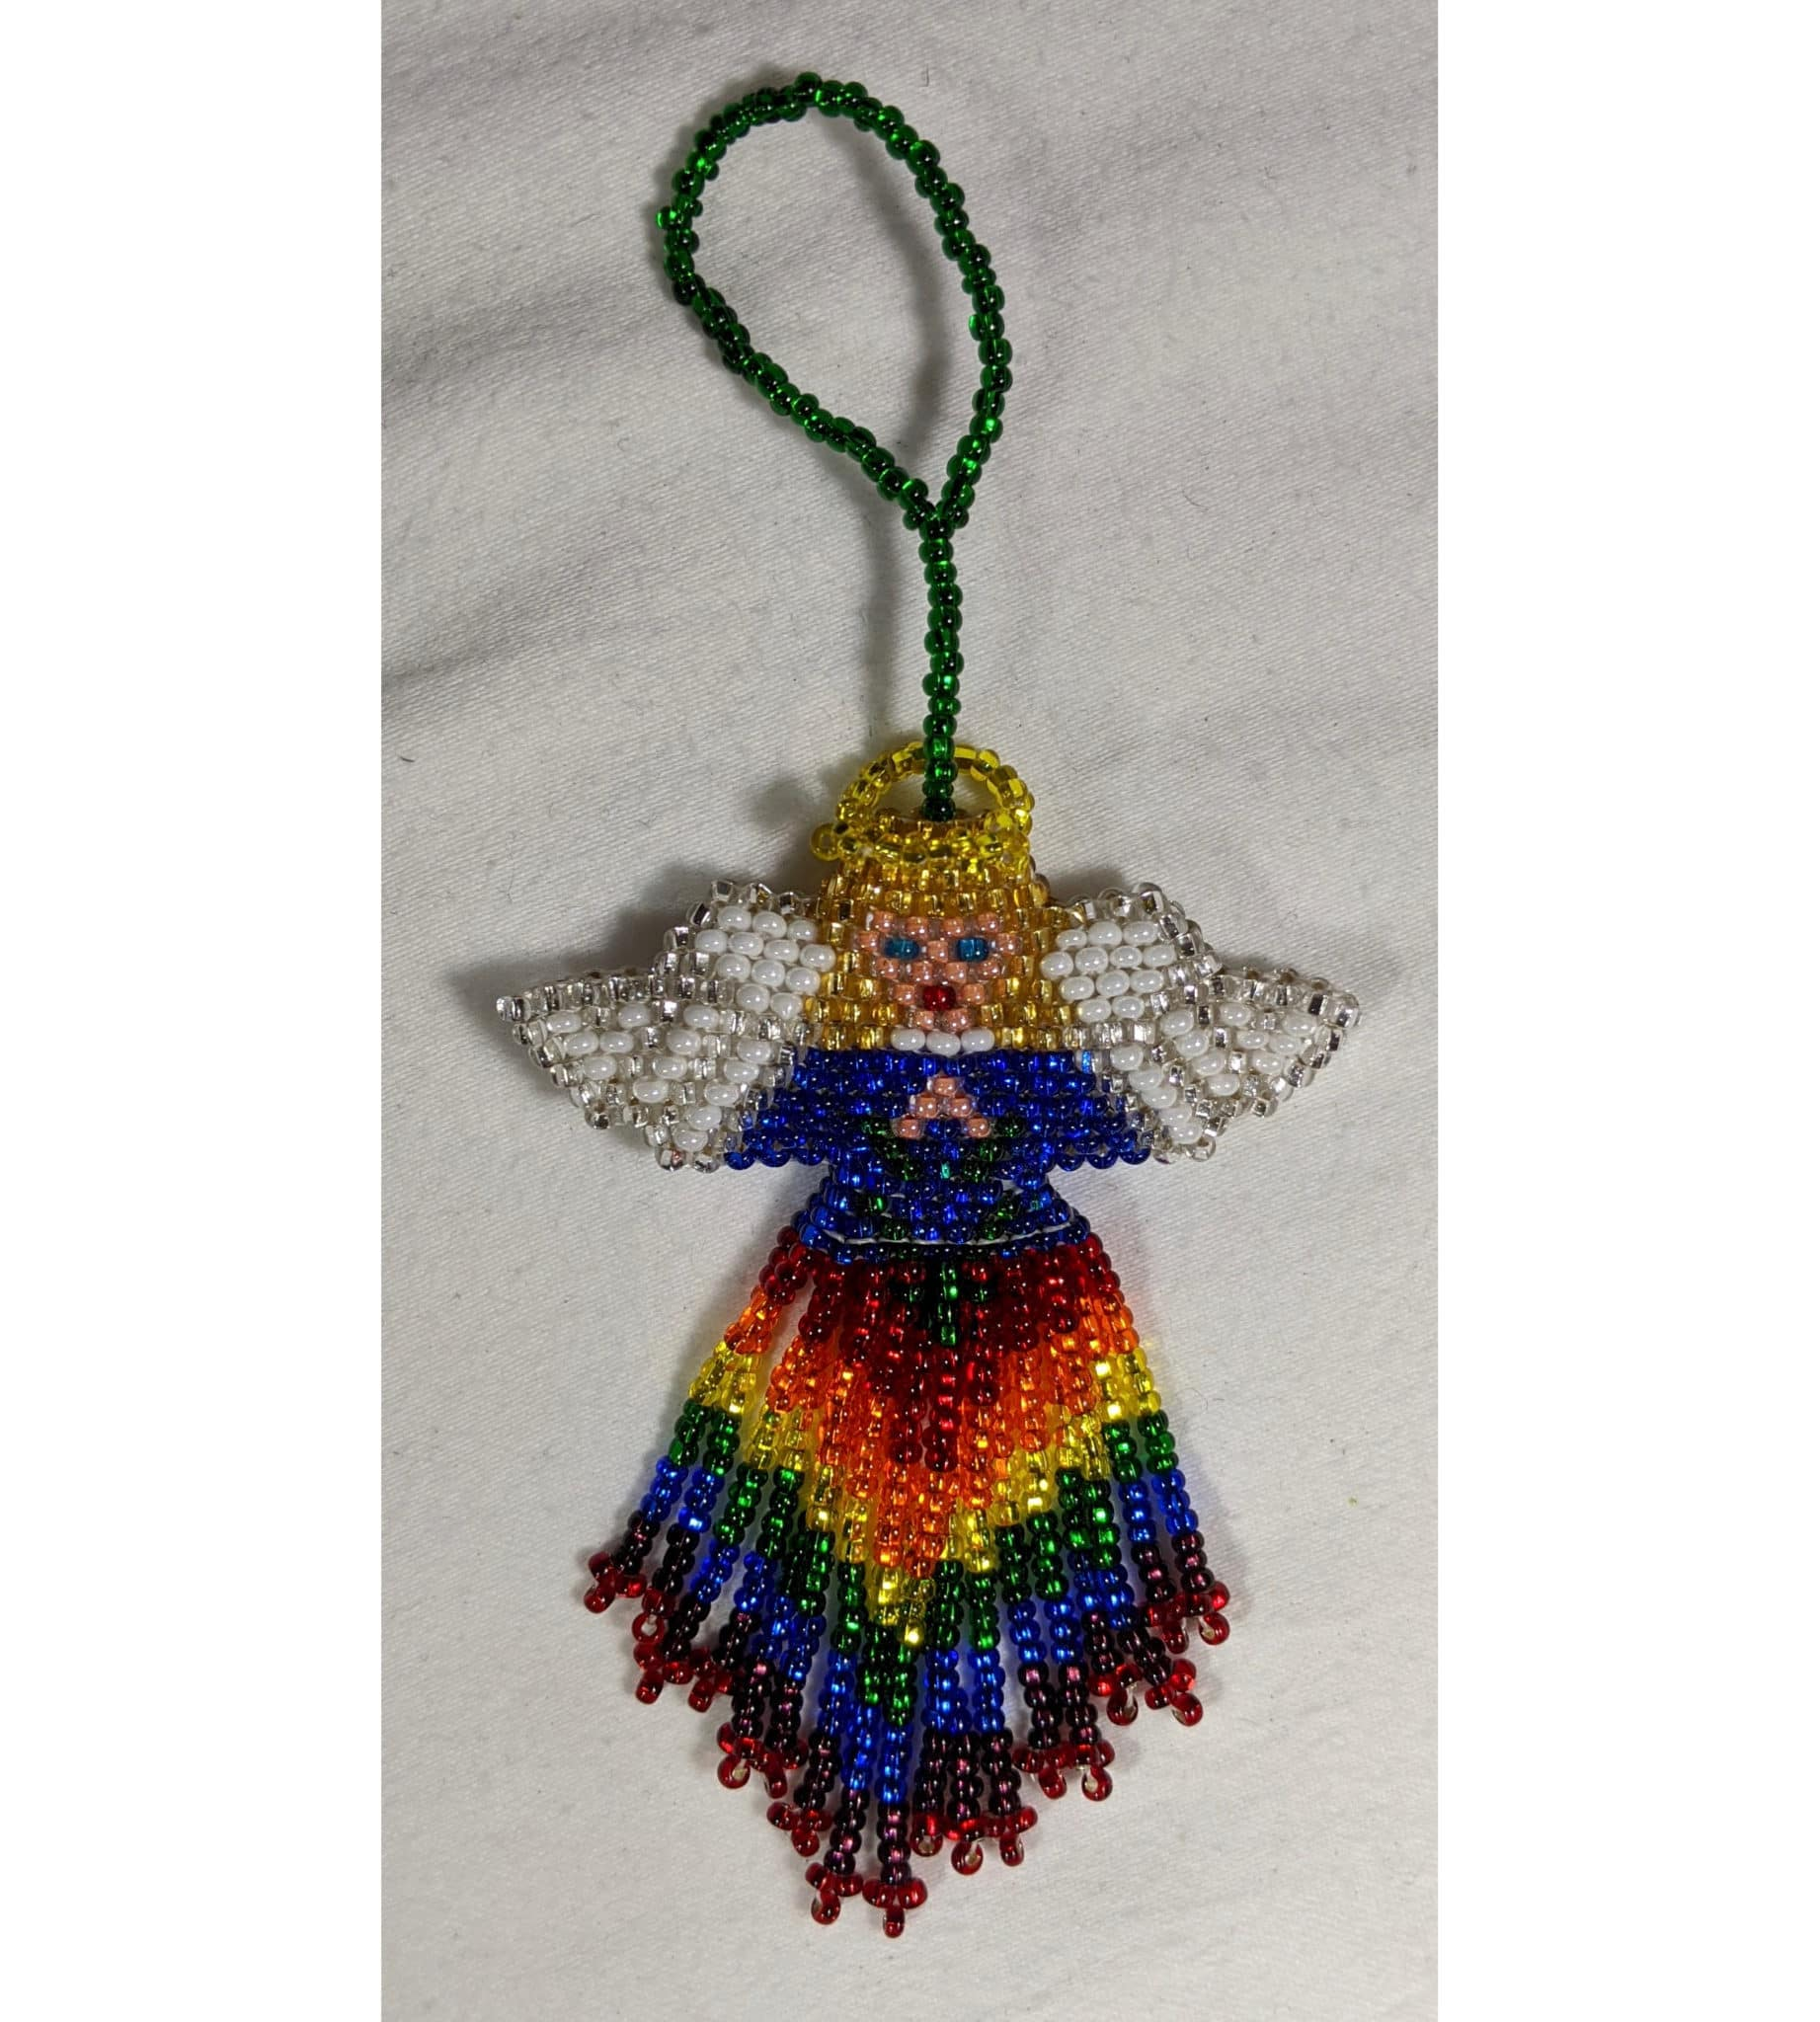 Angel Beaded Ornament - White Face - Blond Hair - Variety of Skirt Colors